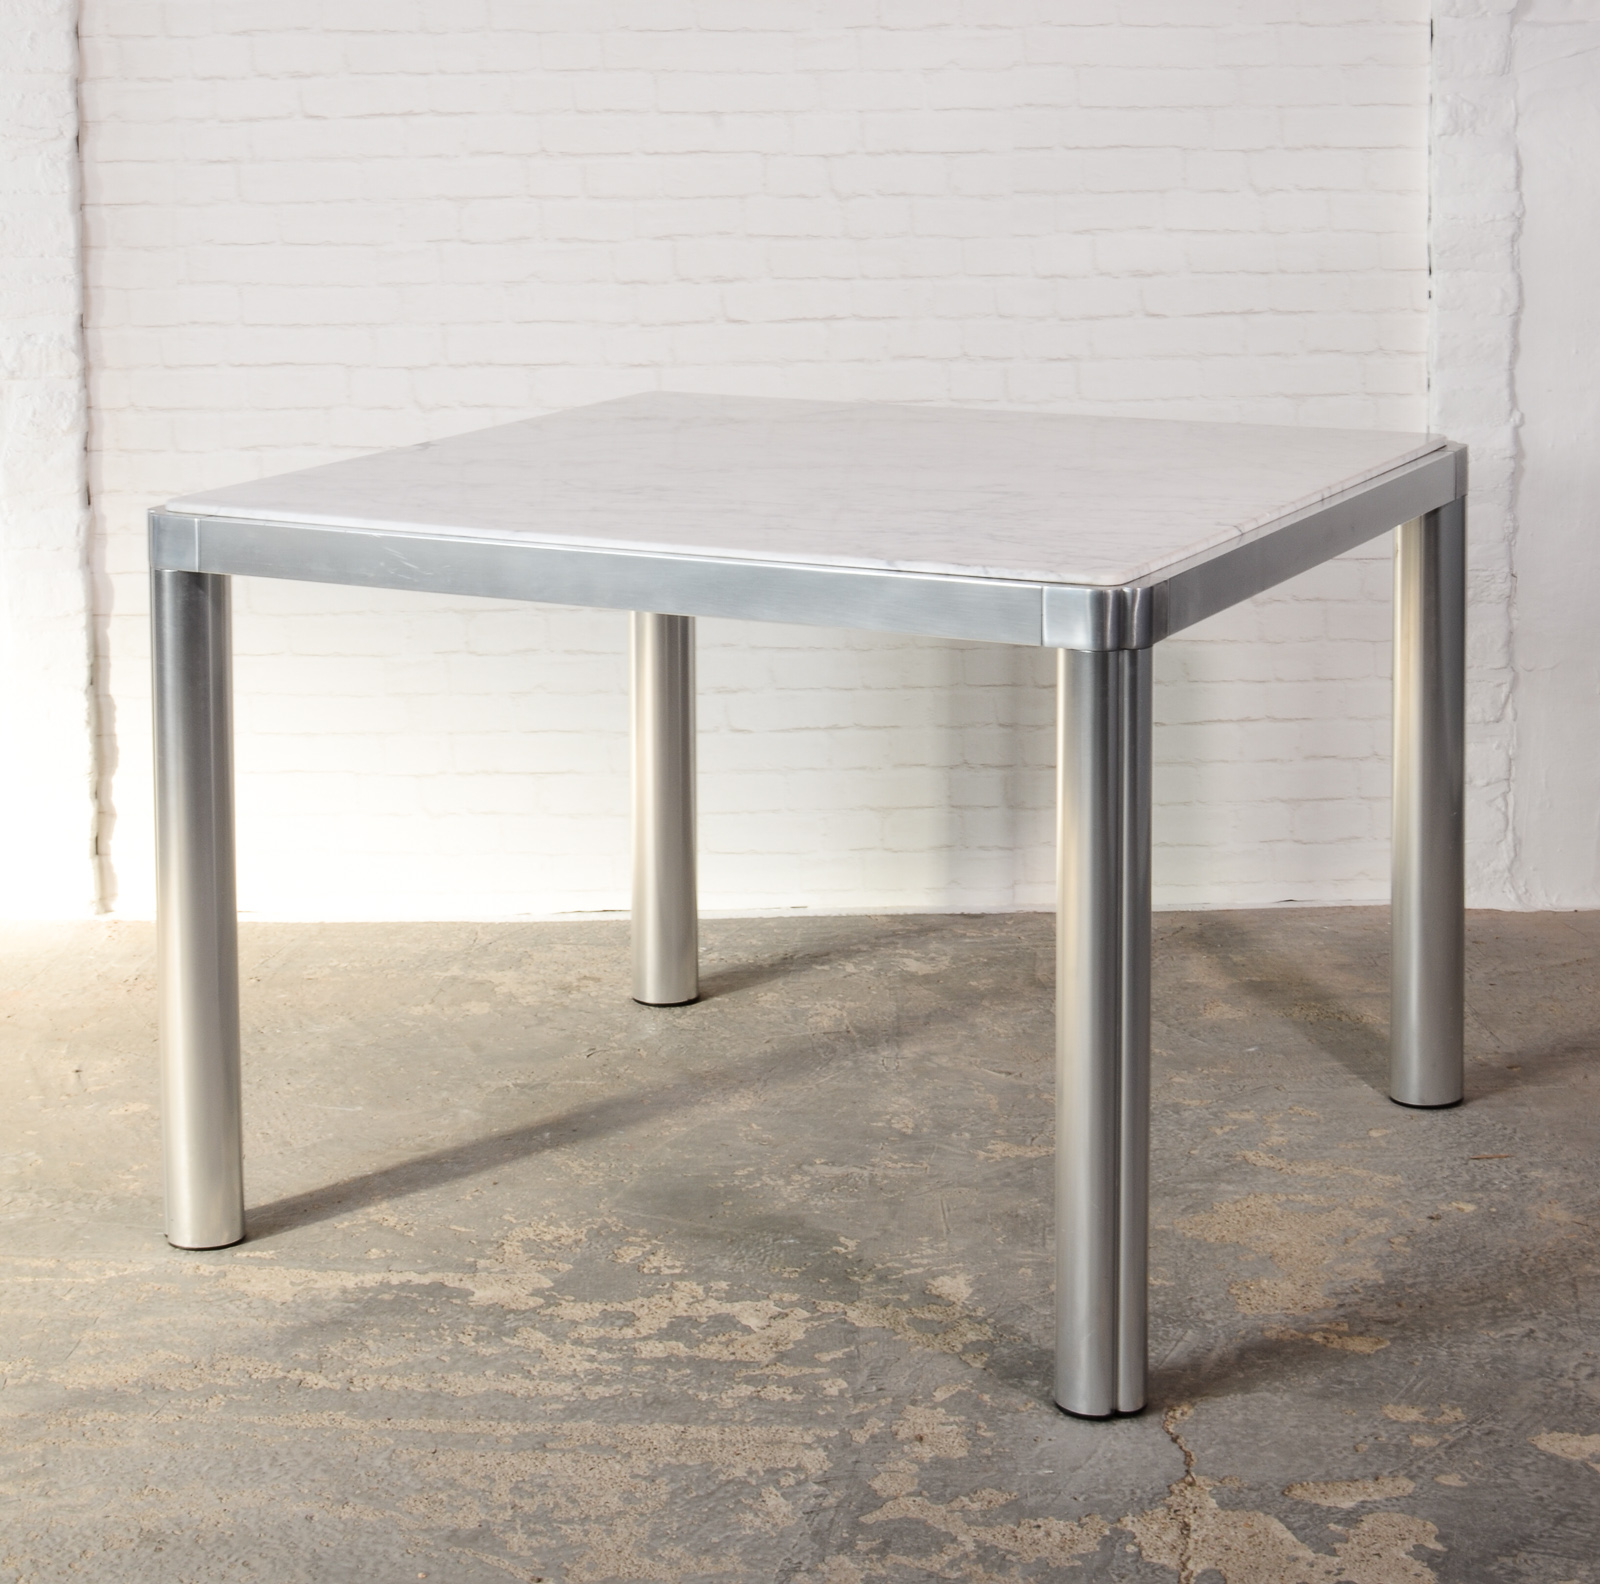 Marvelous Square Marble Table Designed By Kho Liangh For Artifort